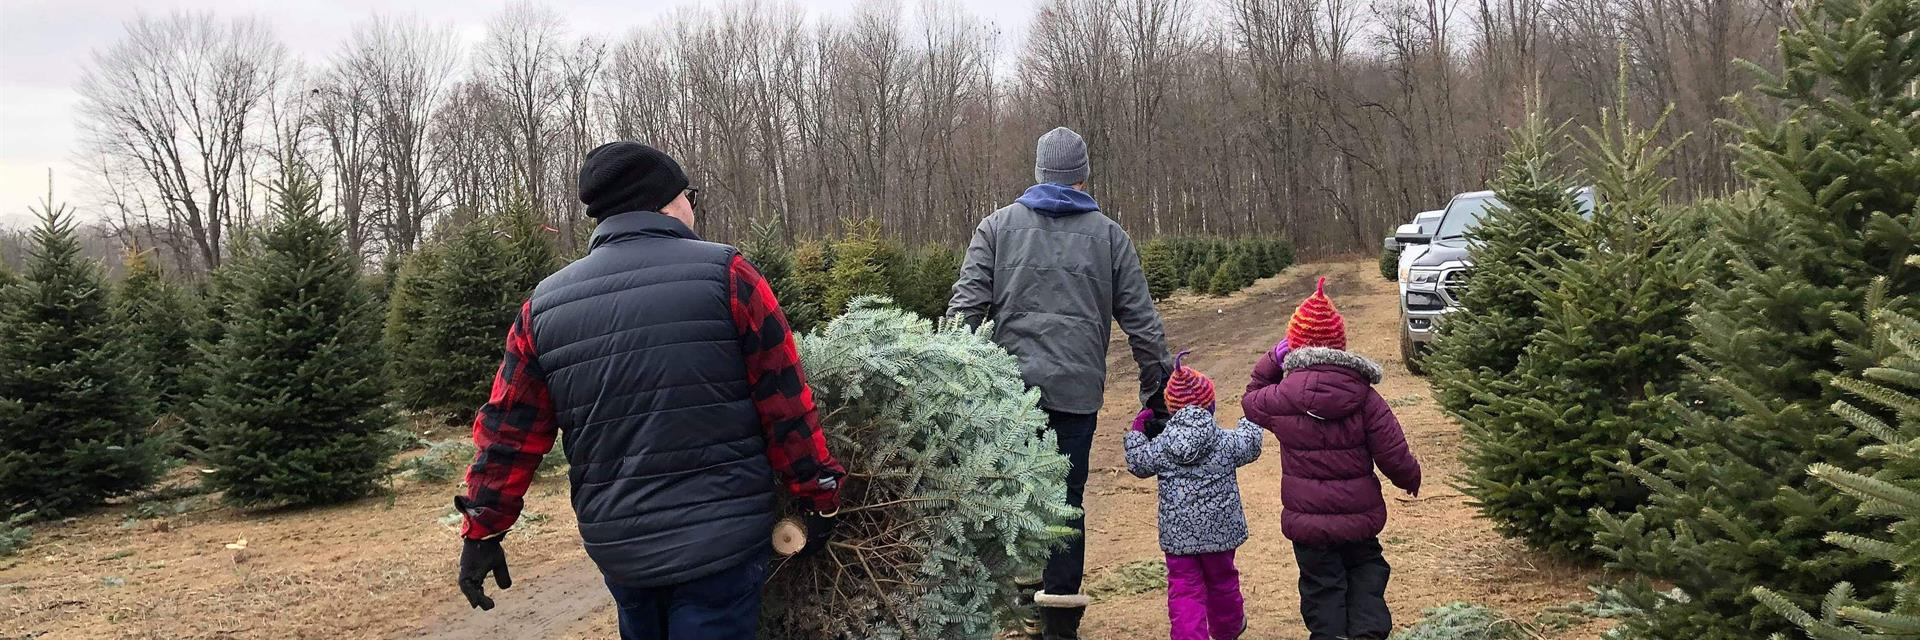 men with christmas trees and children in a farm carrying the tree